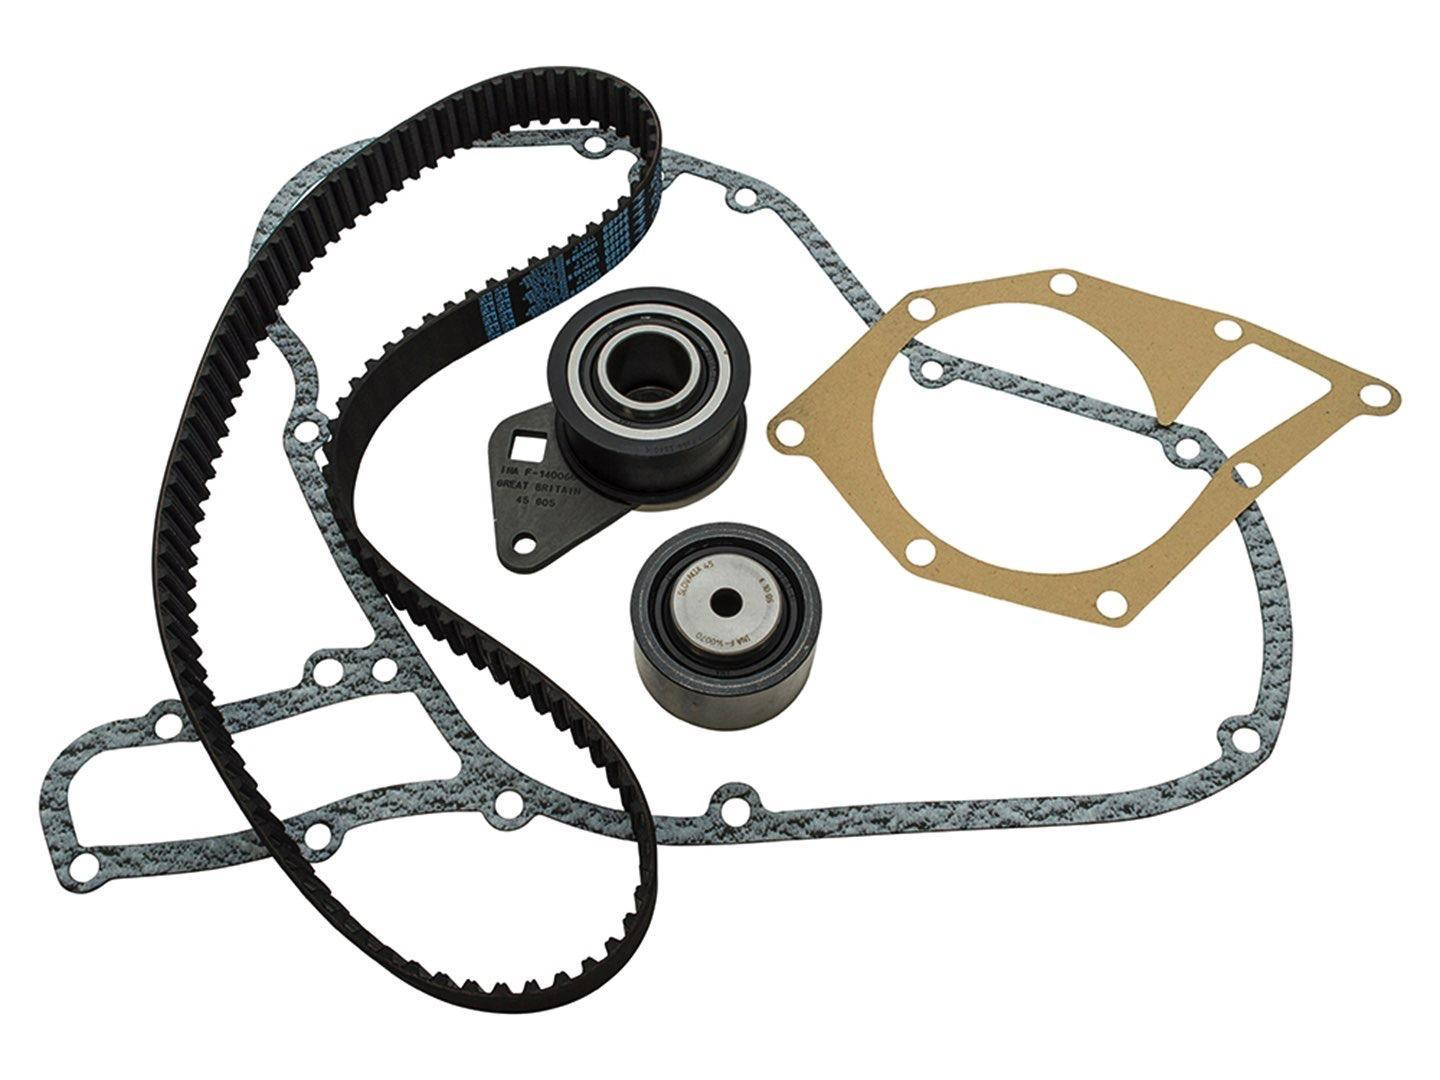 Safari Engineering Land Rover Specialist Hampsshire Eversley - Land Rover Timing Belt Kit - Discovery 1 & Range Rover Classic - Britpart DA1200DISG